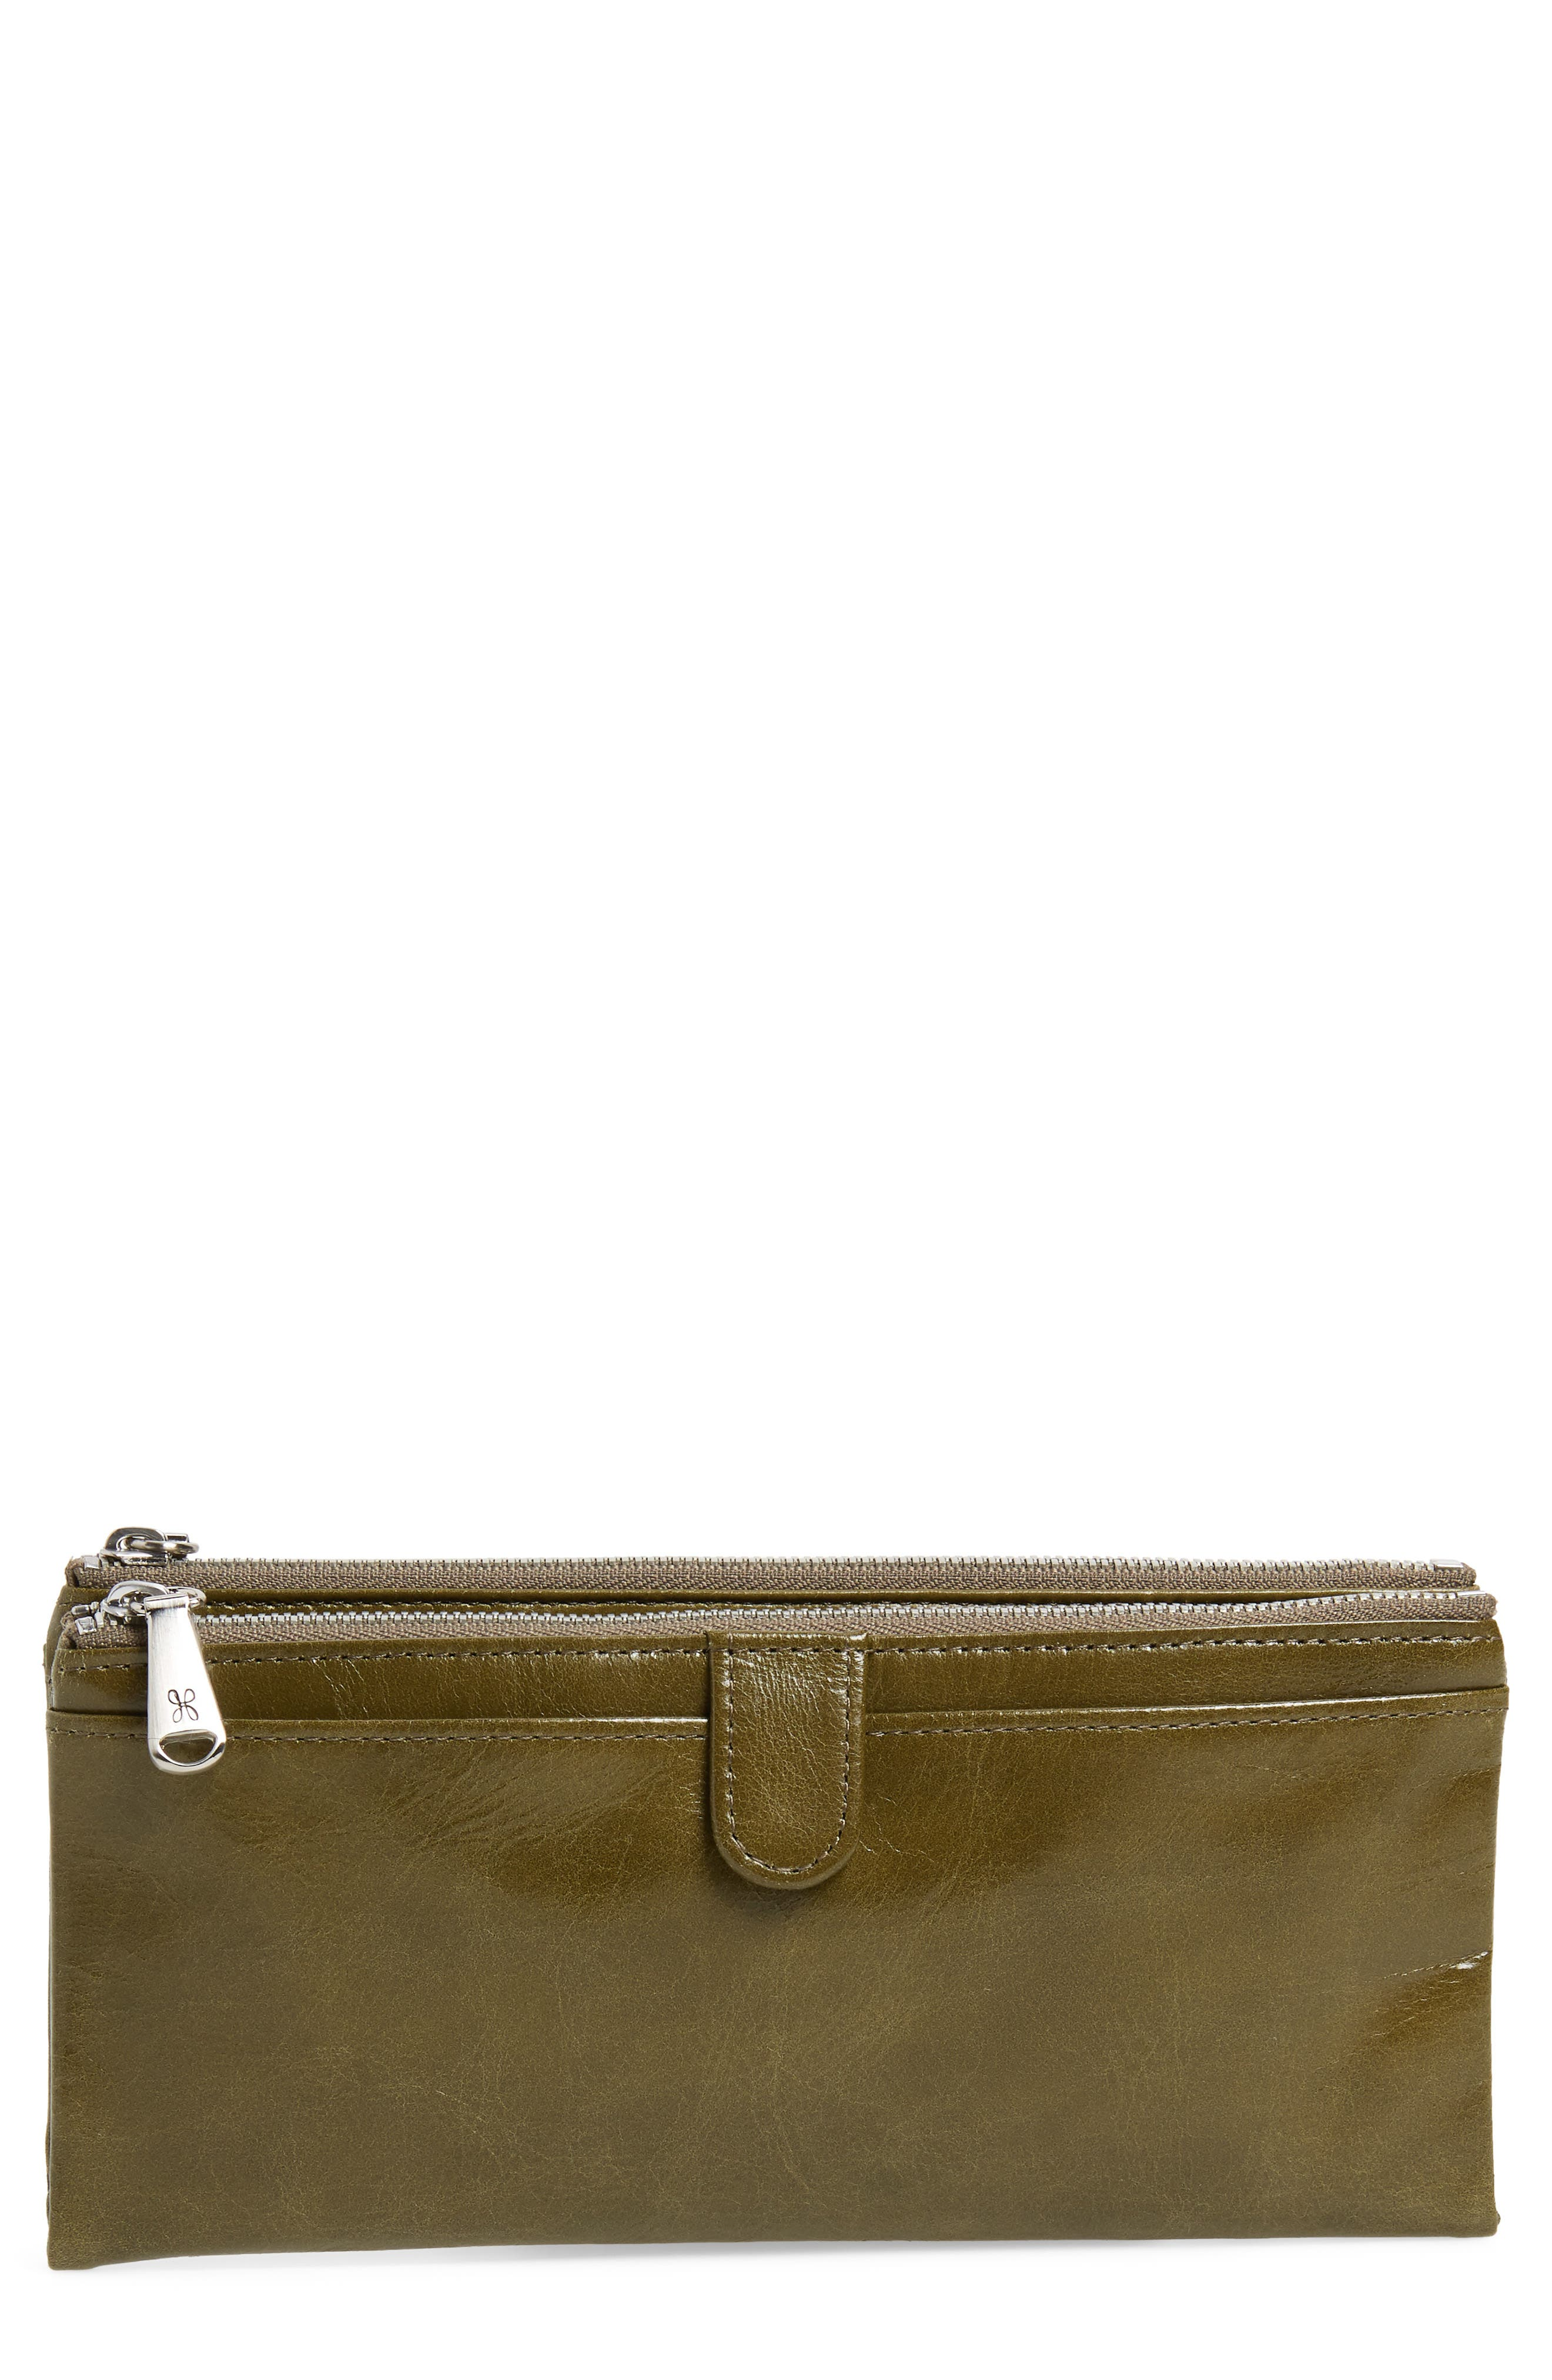 Taylor Glazed Wallet,                         Main,                         color, WILLOW